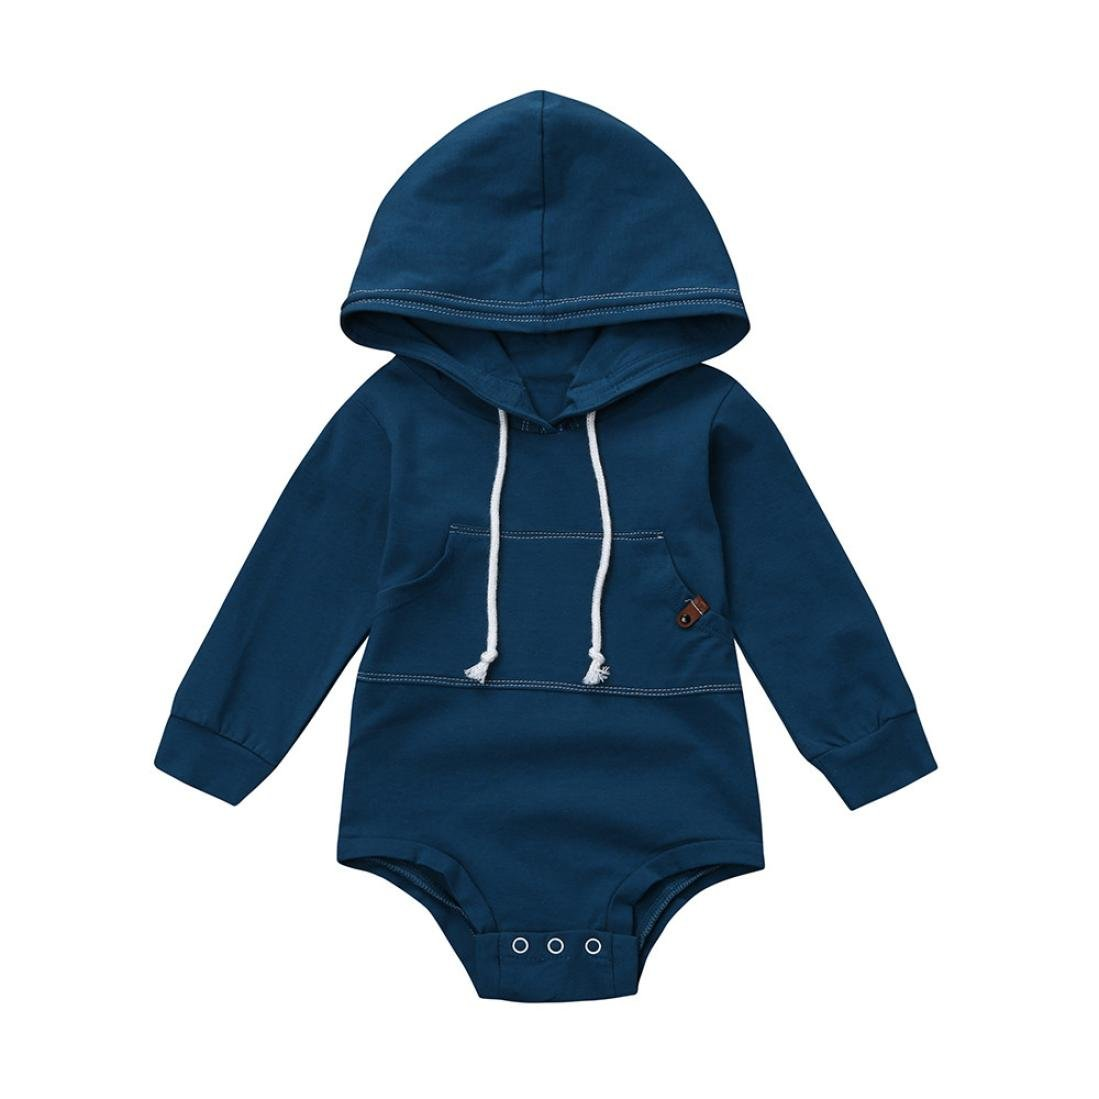 Unisex Romper, OSYARD Newborn Infant Baby Solid Hooded Romper Jumpsuit Tops Outfits Clothes for 0-18M